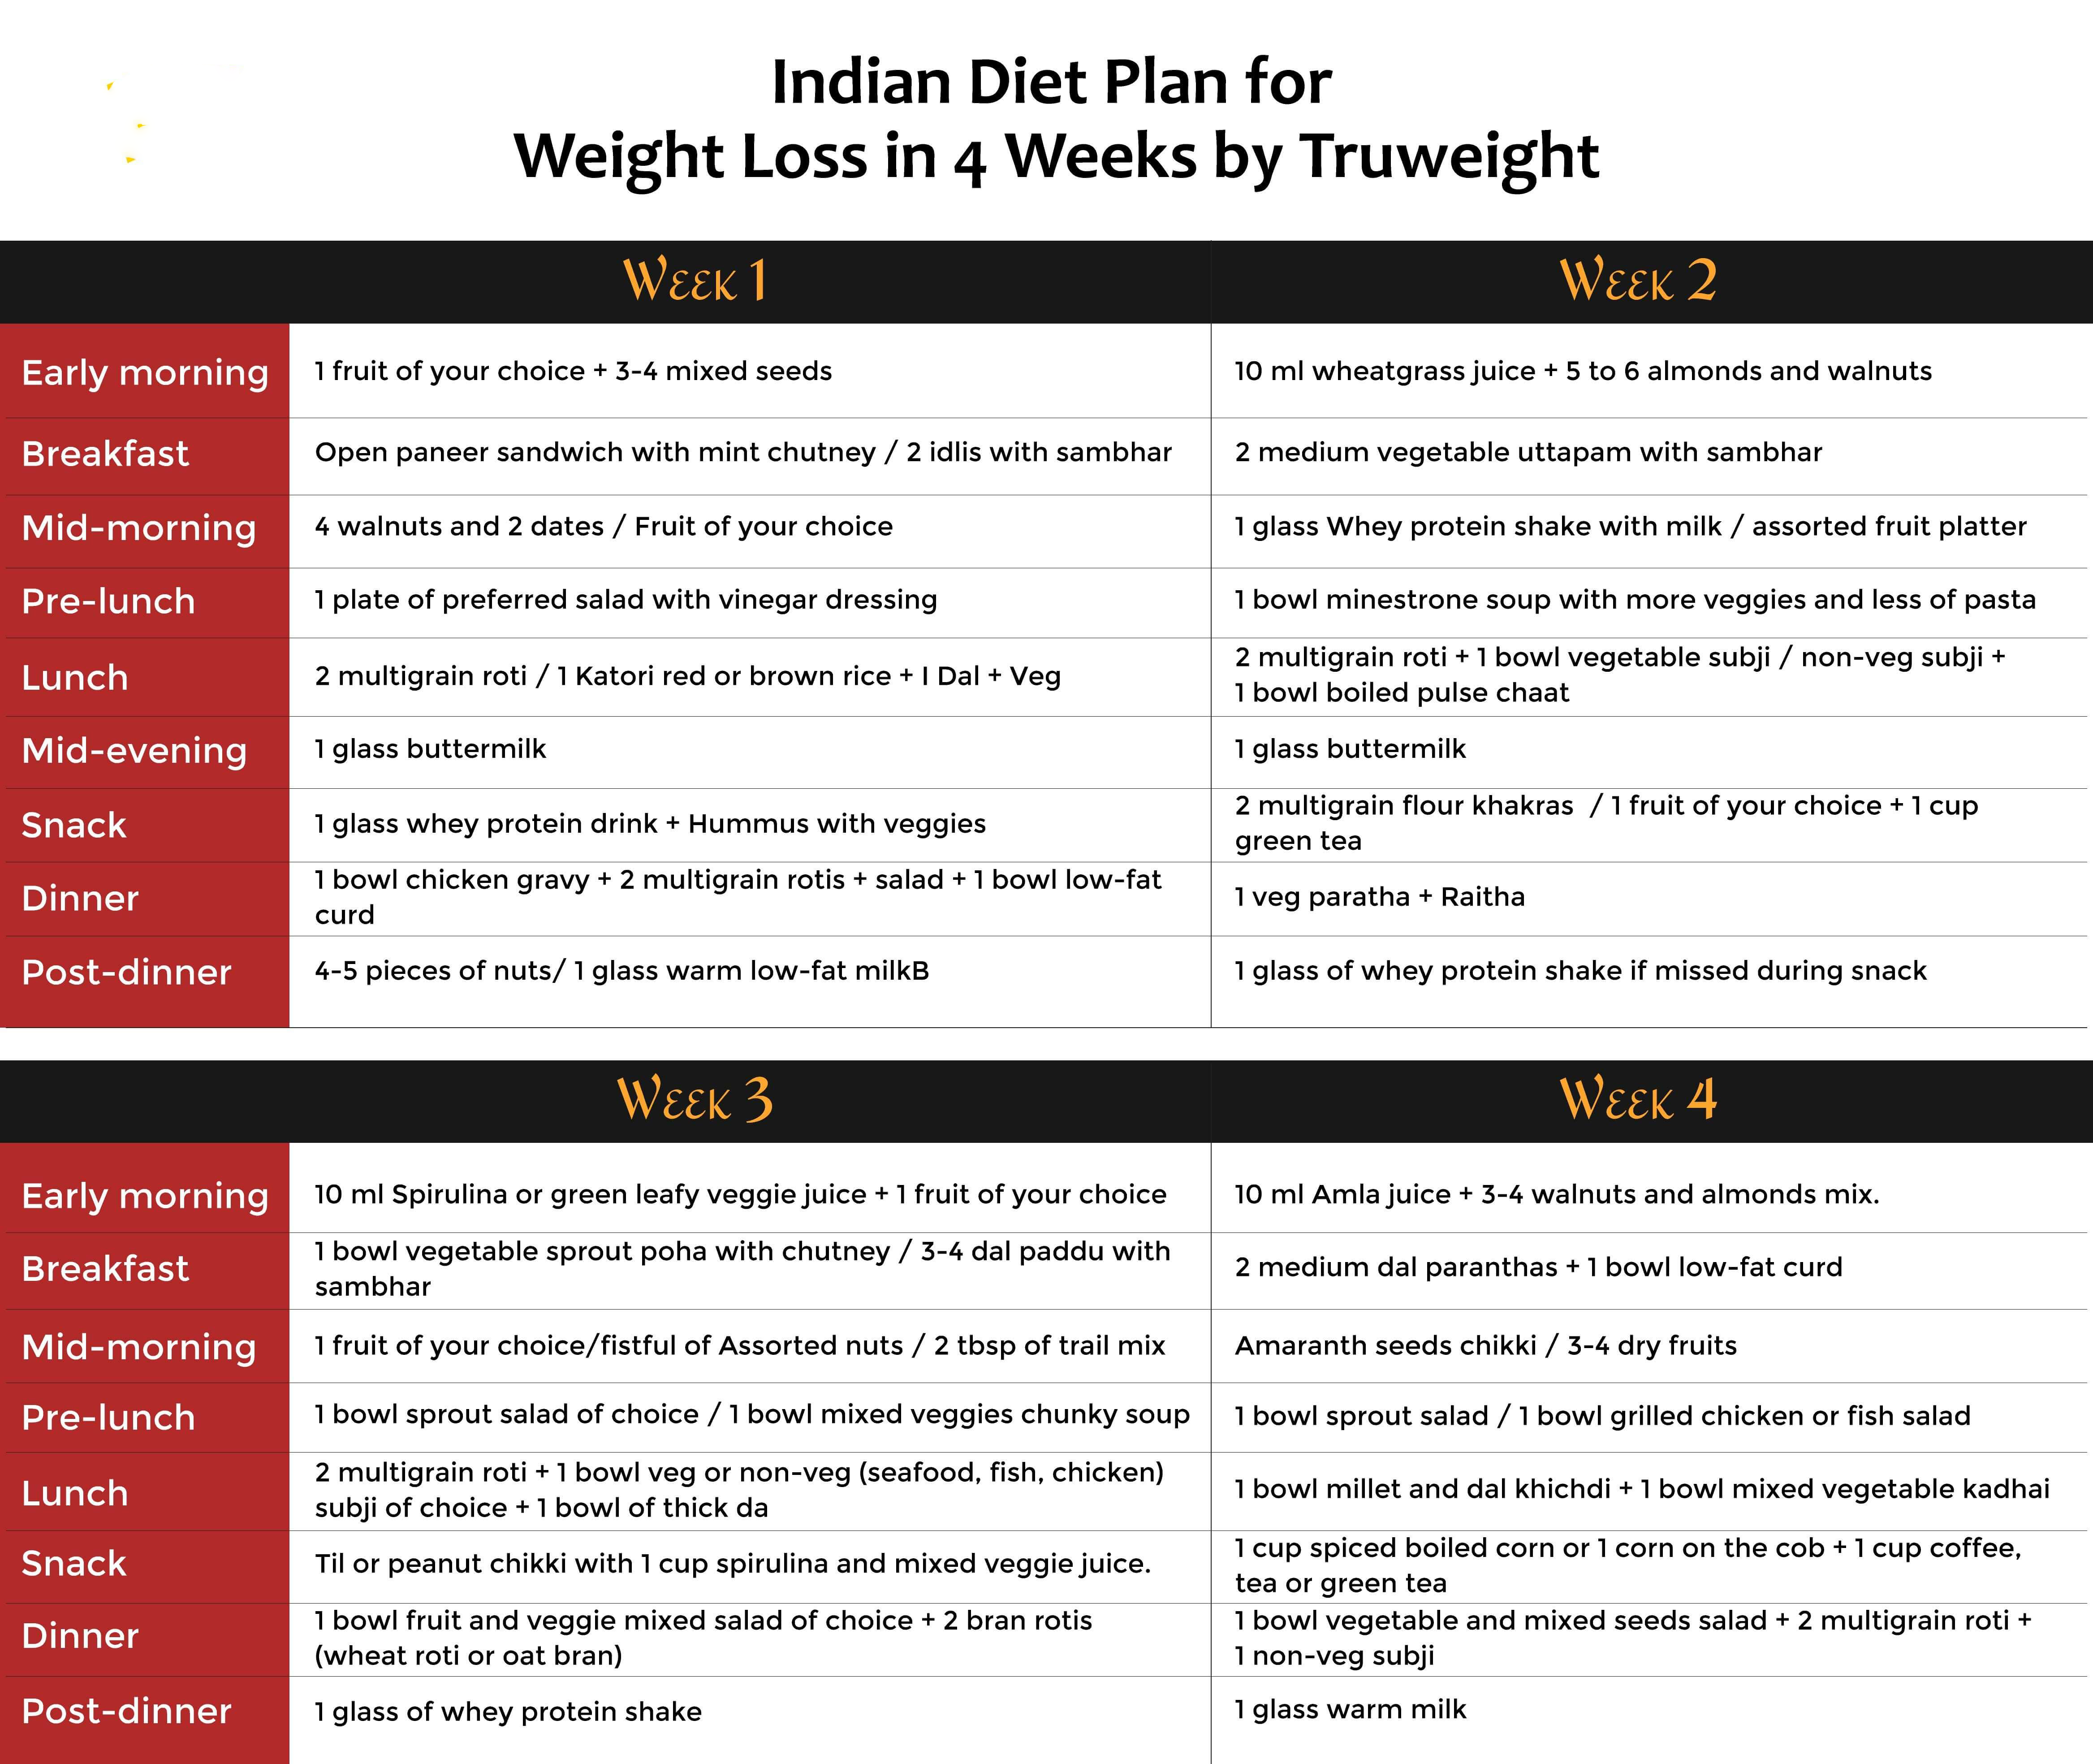 Best Indian Diet Plan for Weight Loss: Healthy Tips To Lose Weight In 4 Weeks